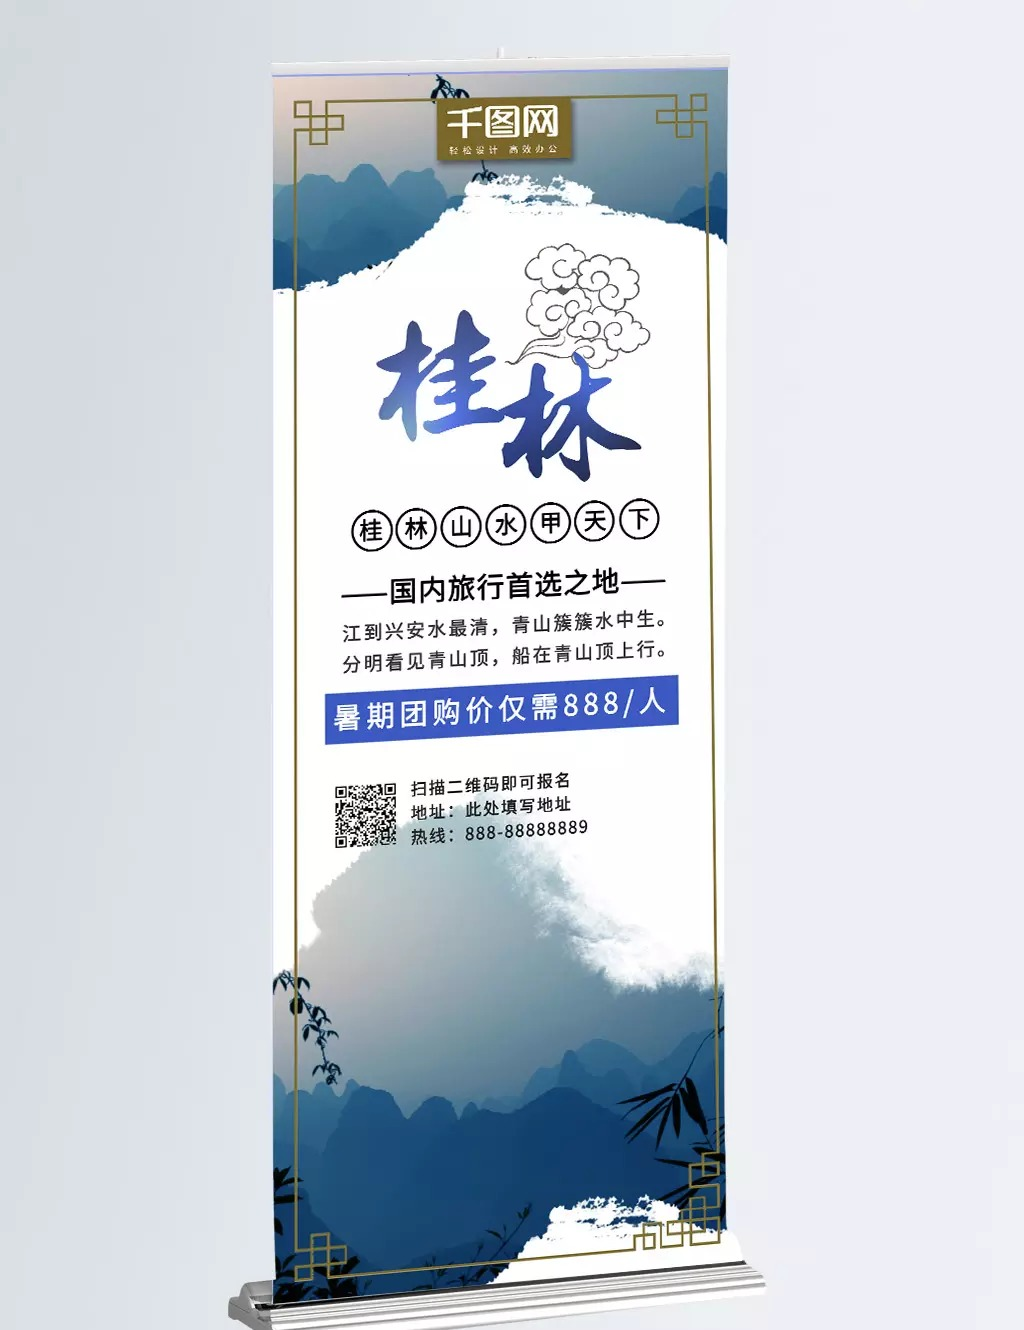 Exhibition Stand Roll Up : Guilin domestic travel exhibition stand roll up template for free